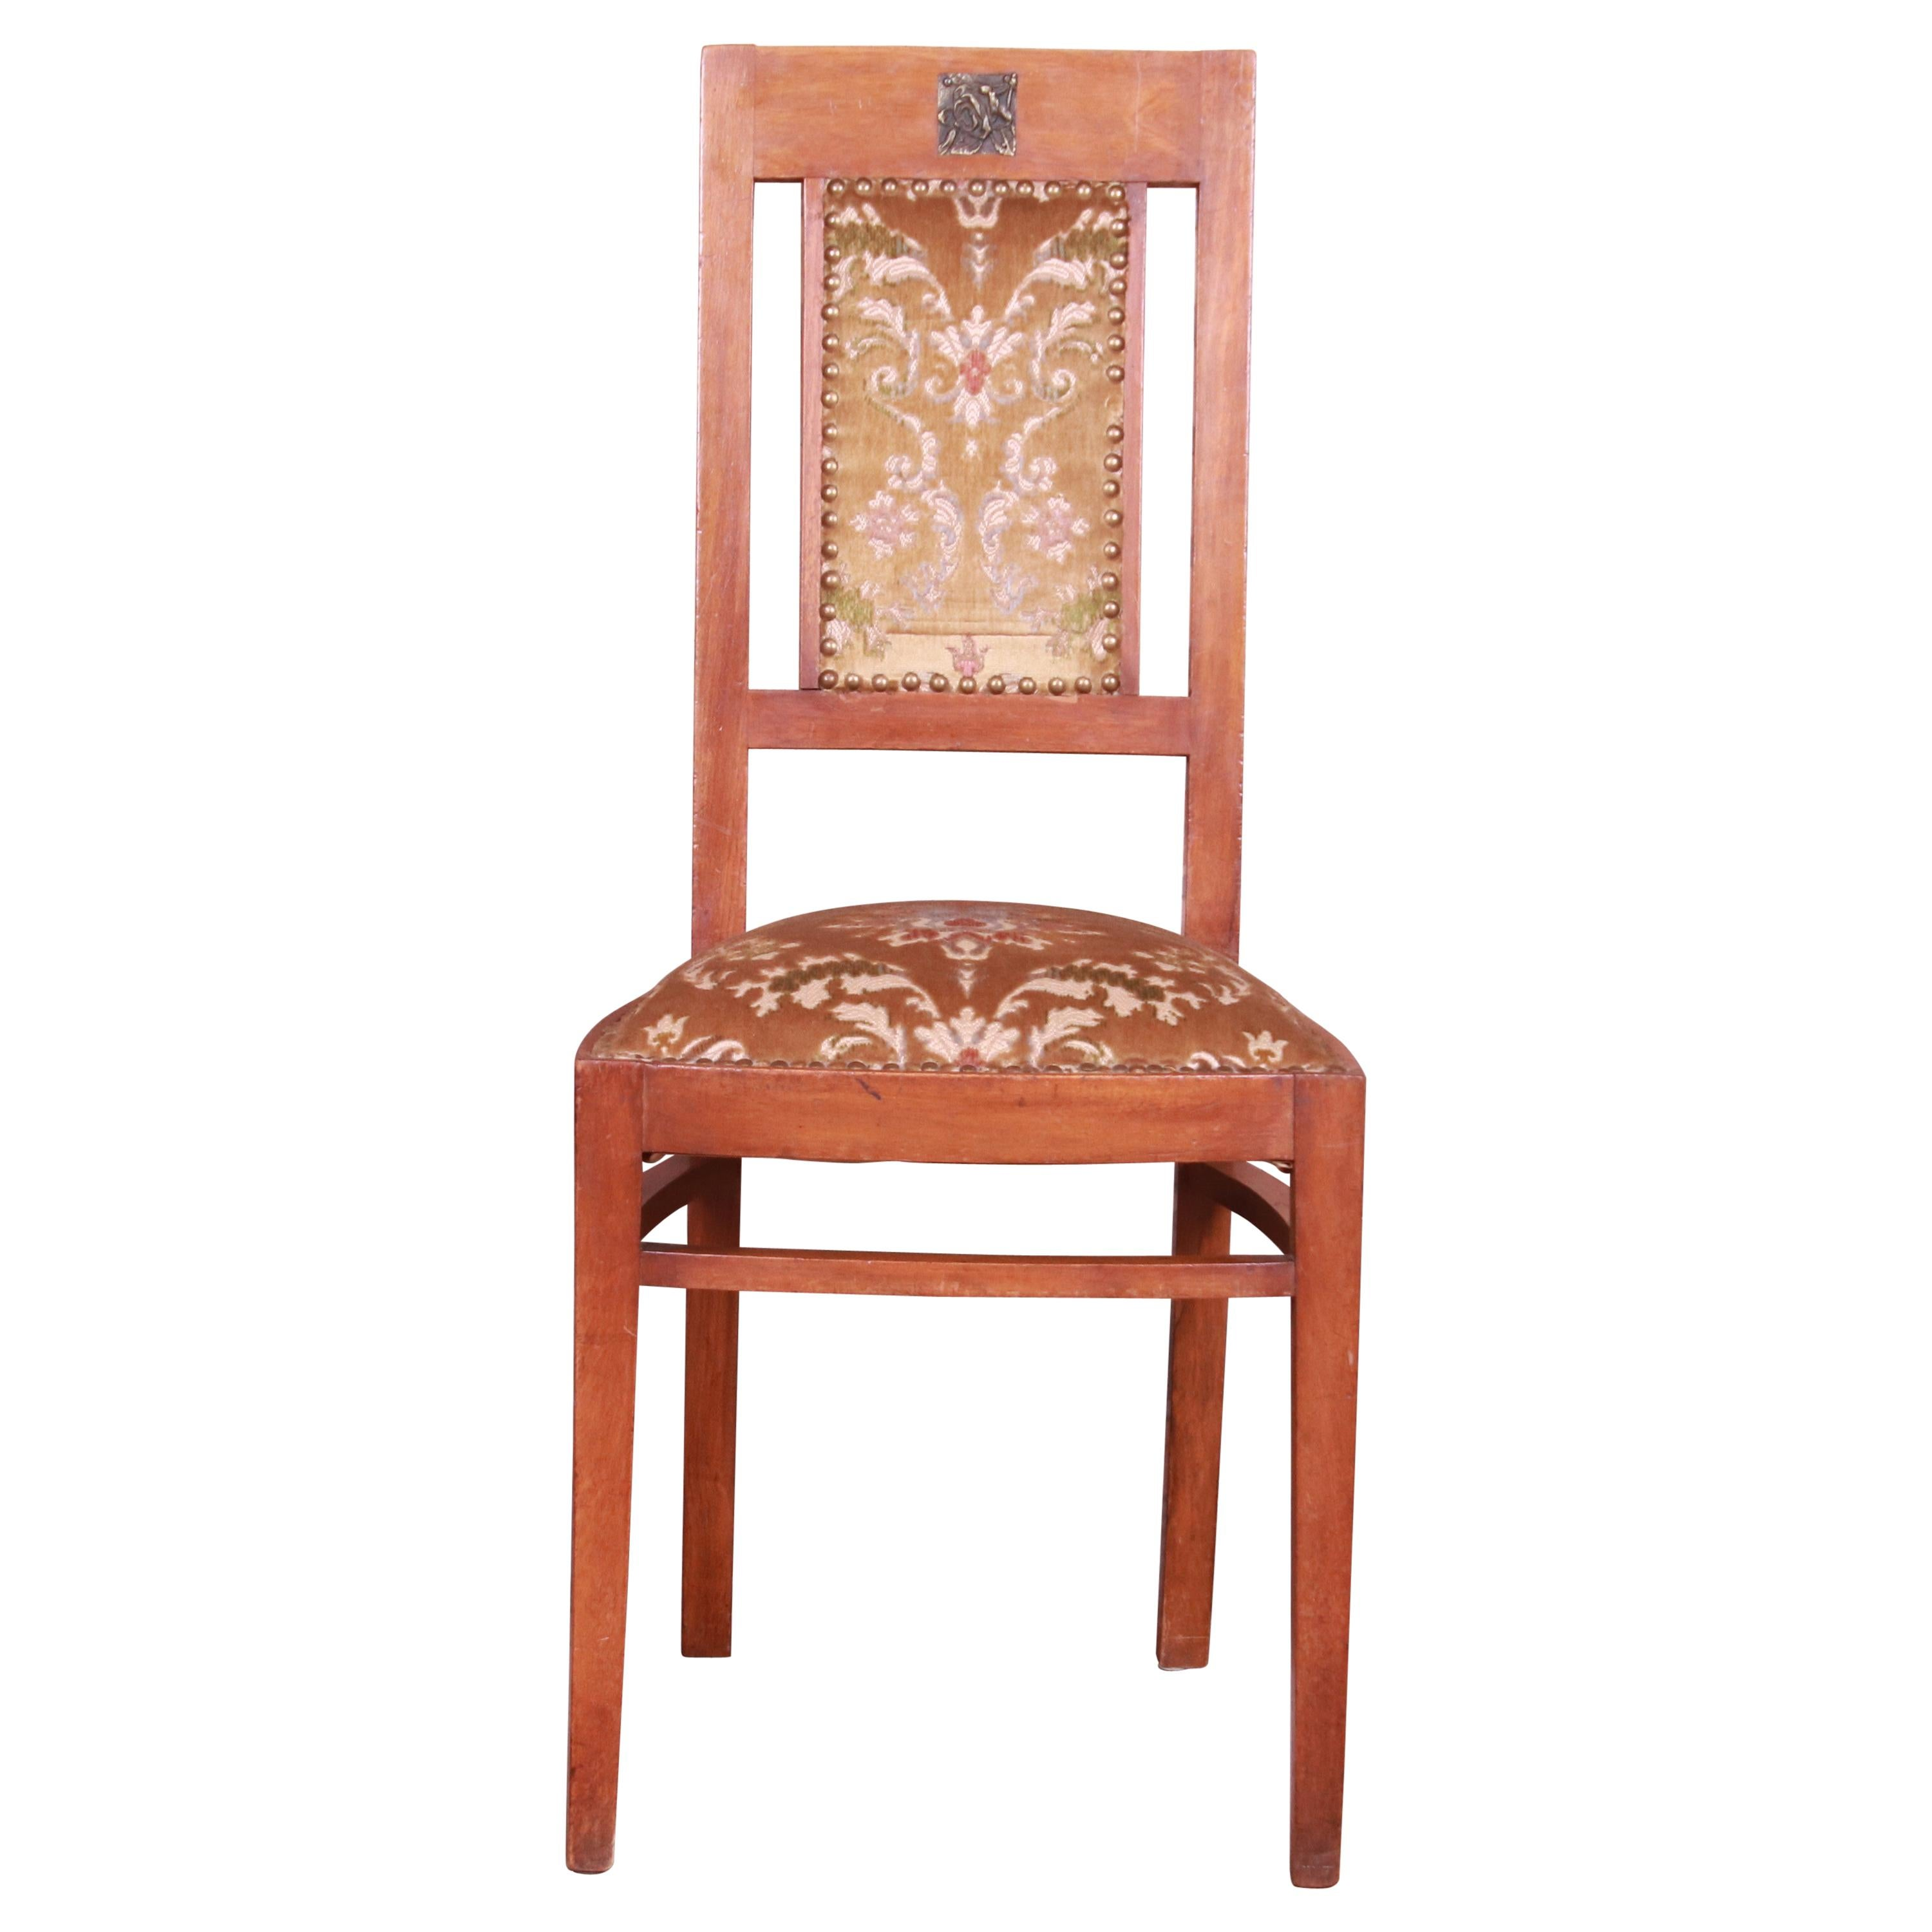 Antique French Art Deco Mahogany Side Chair, circa 1920s